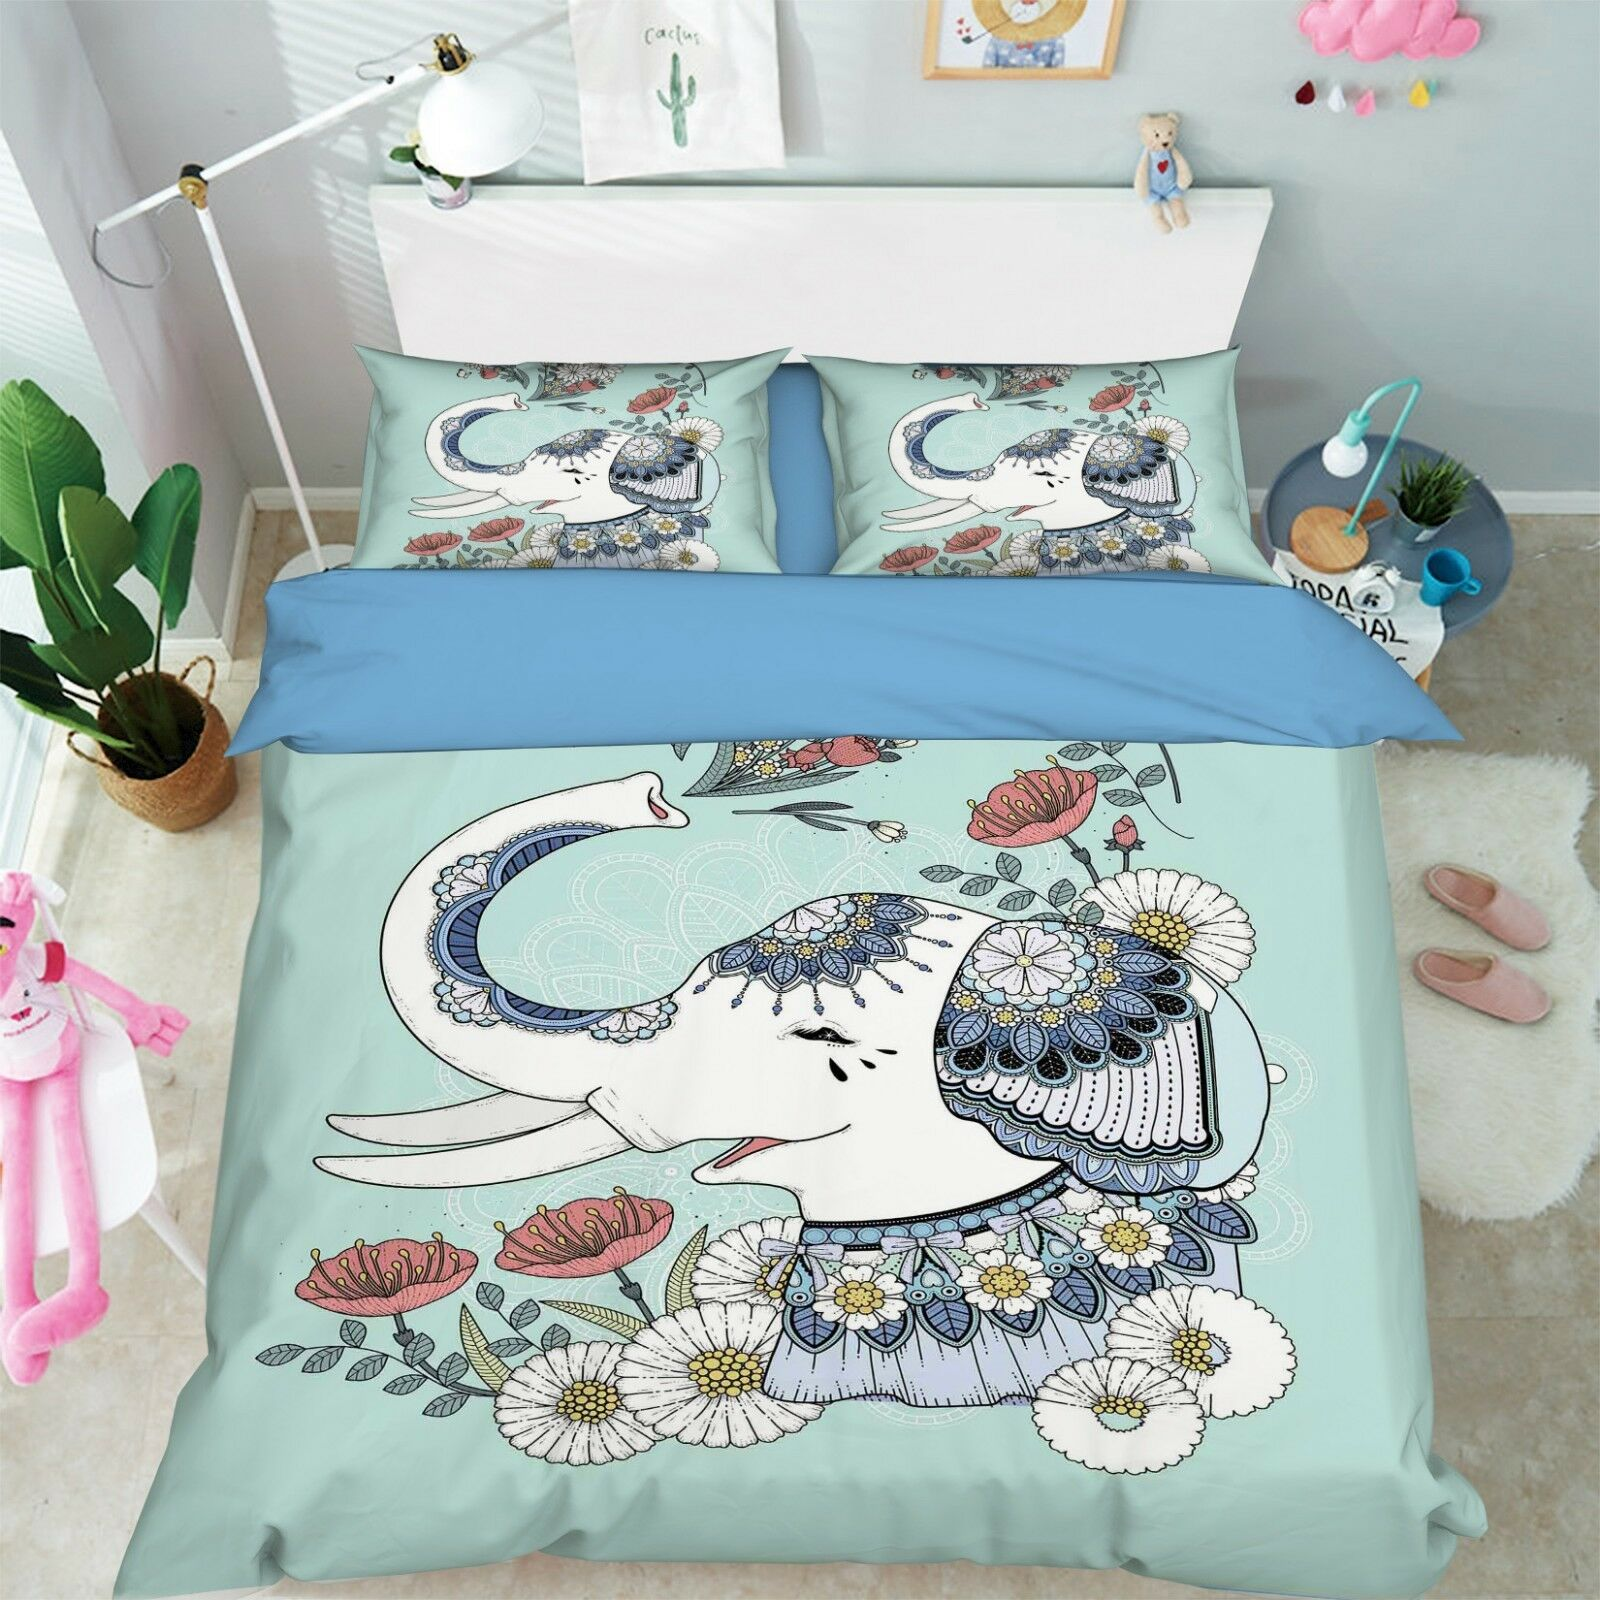 3D Painted Elephant 7 Bed Pillowcases Quilt Duvet Cover Set Single Queen King CA